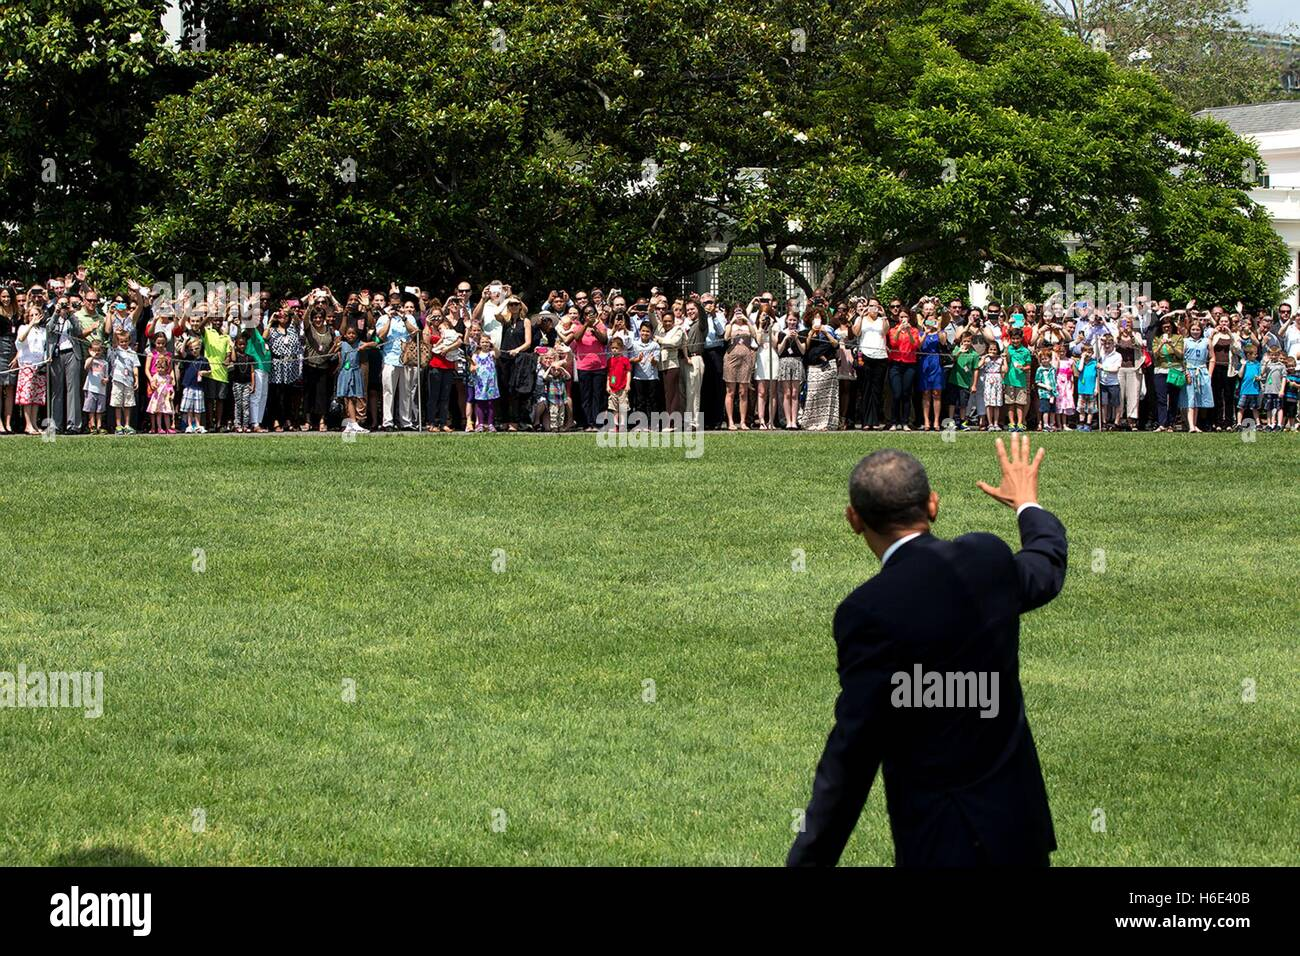 U.S. President Barack Obama waves to guests on the White House South Lawn upon arrival May 28, 2014 in Washington, - Stock Image